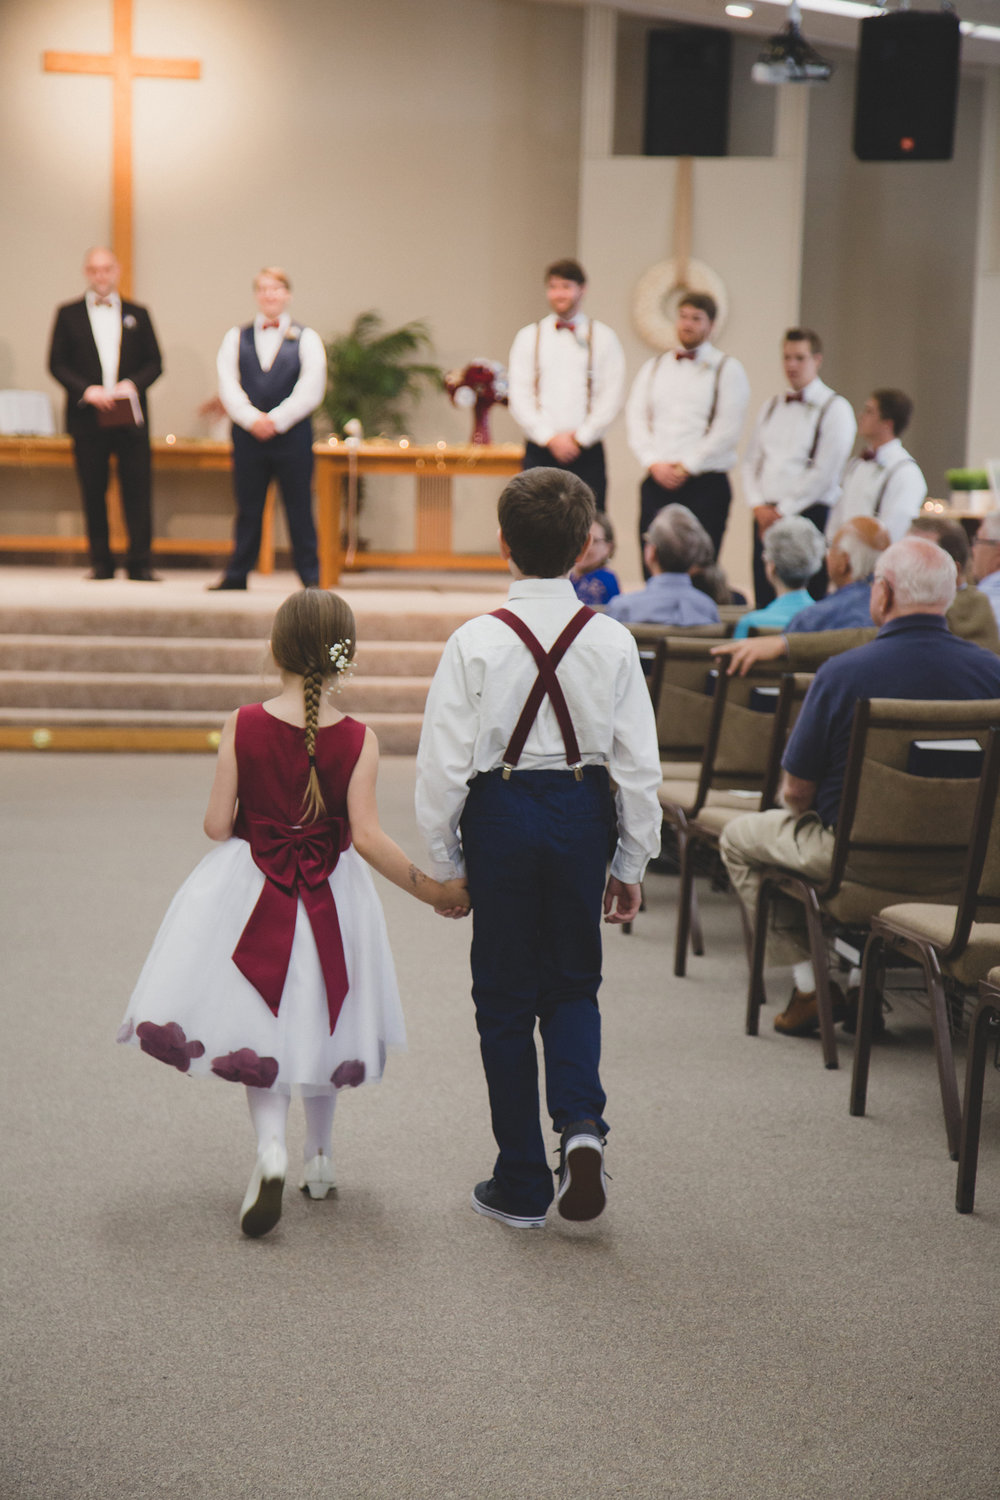 Tri Cities Wedding Photographer_Karis and Adrienne_Church wedding_Grace United Reformed Church 2 Flower Girl Ring bearer